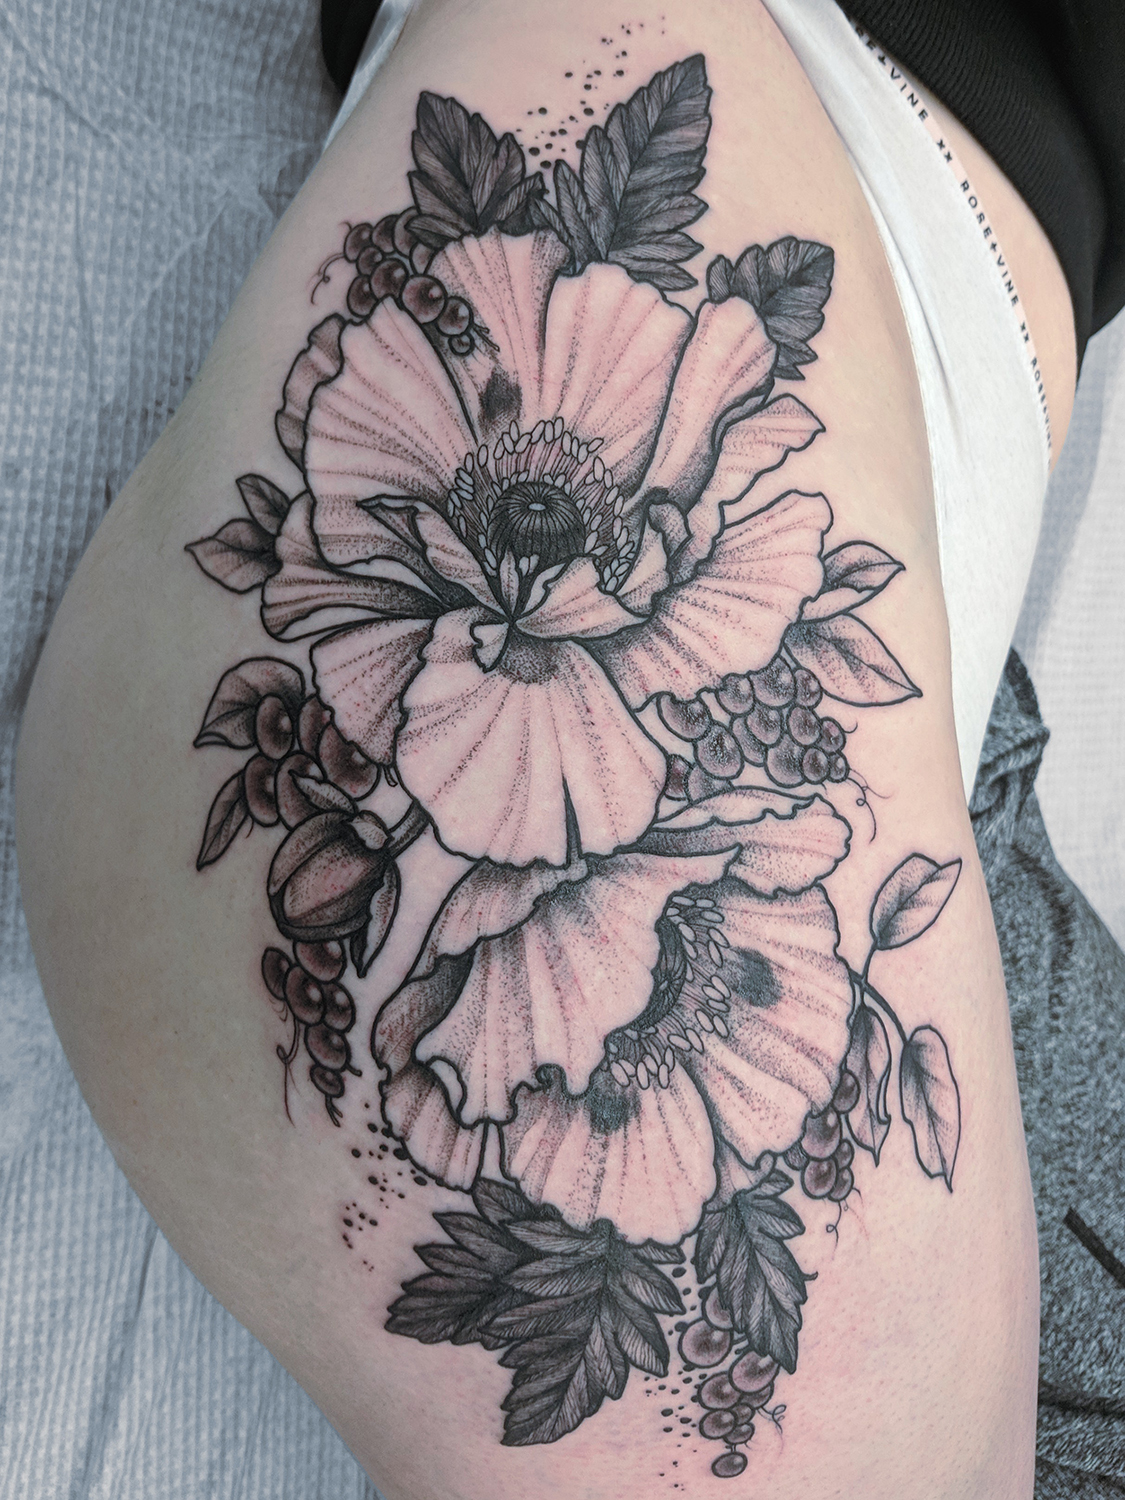 Brandy Campbell Tattoo 2019 Okanagan Tattoo Show & Brewfest Artist